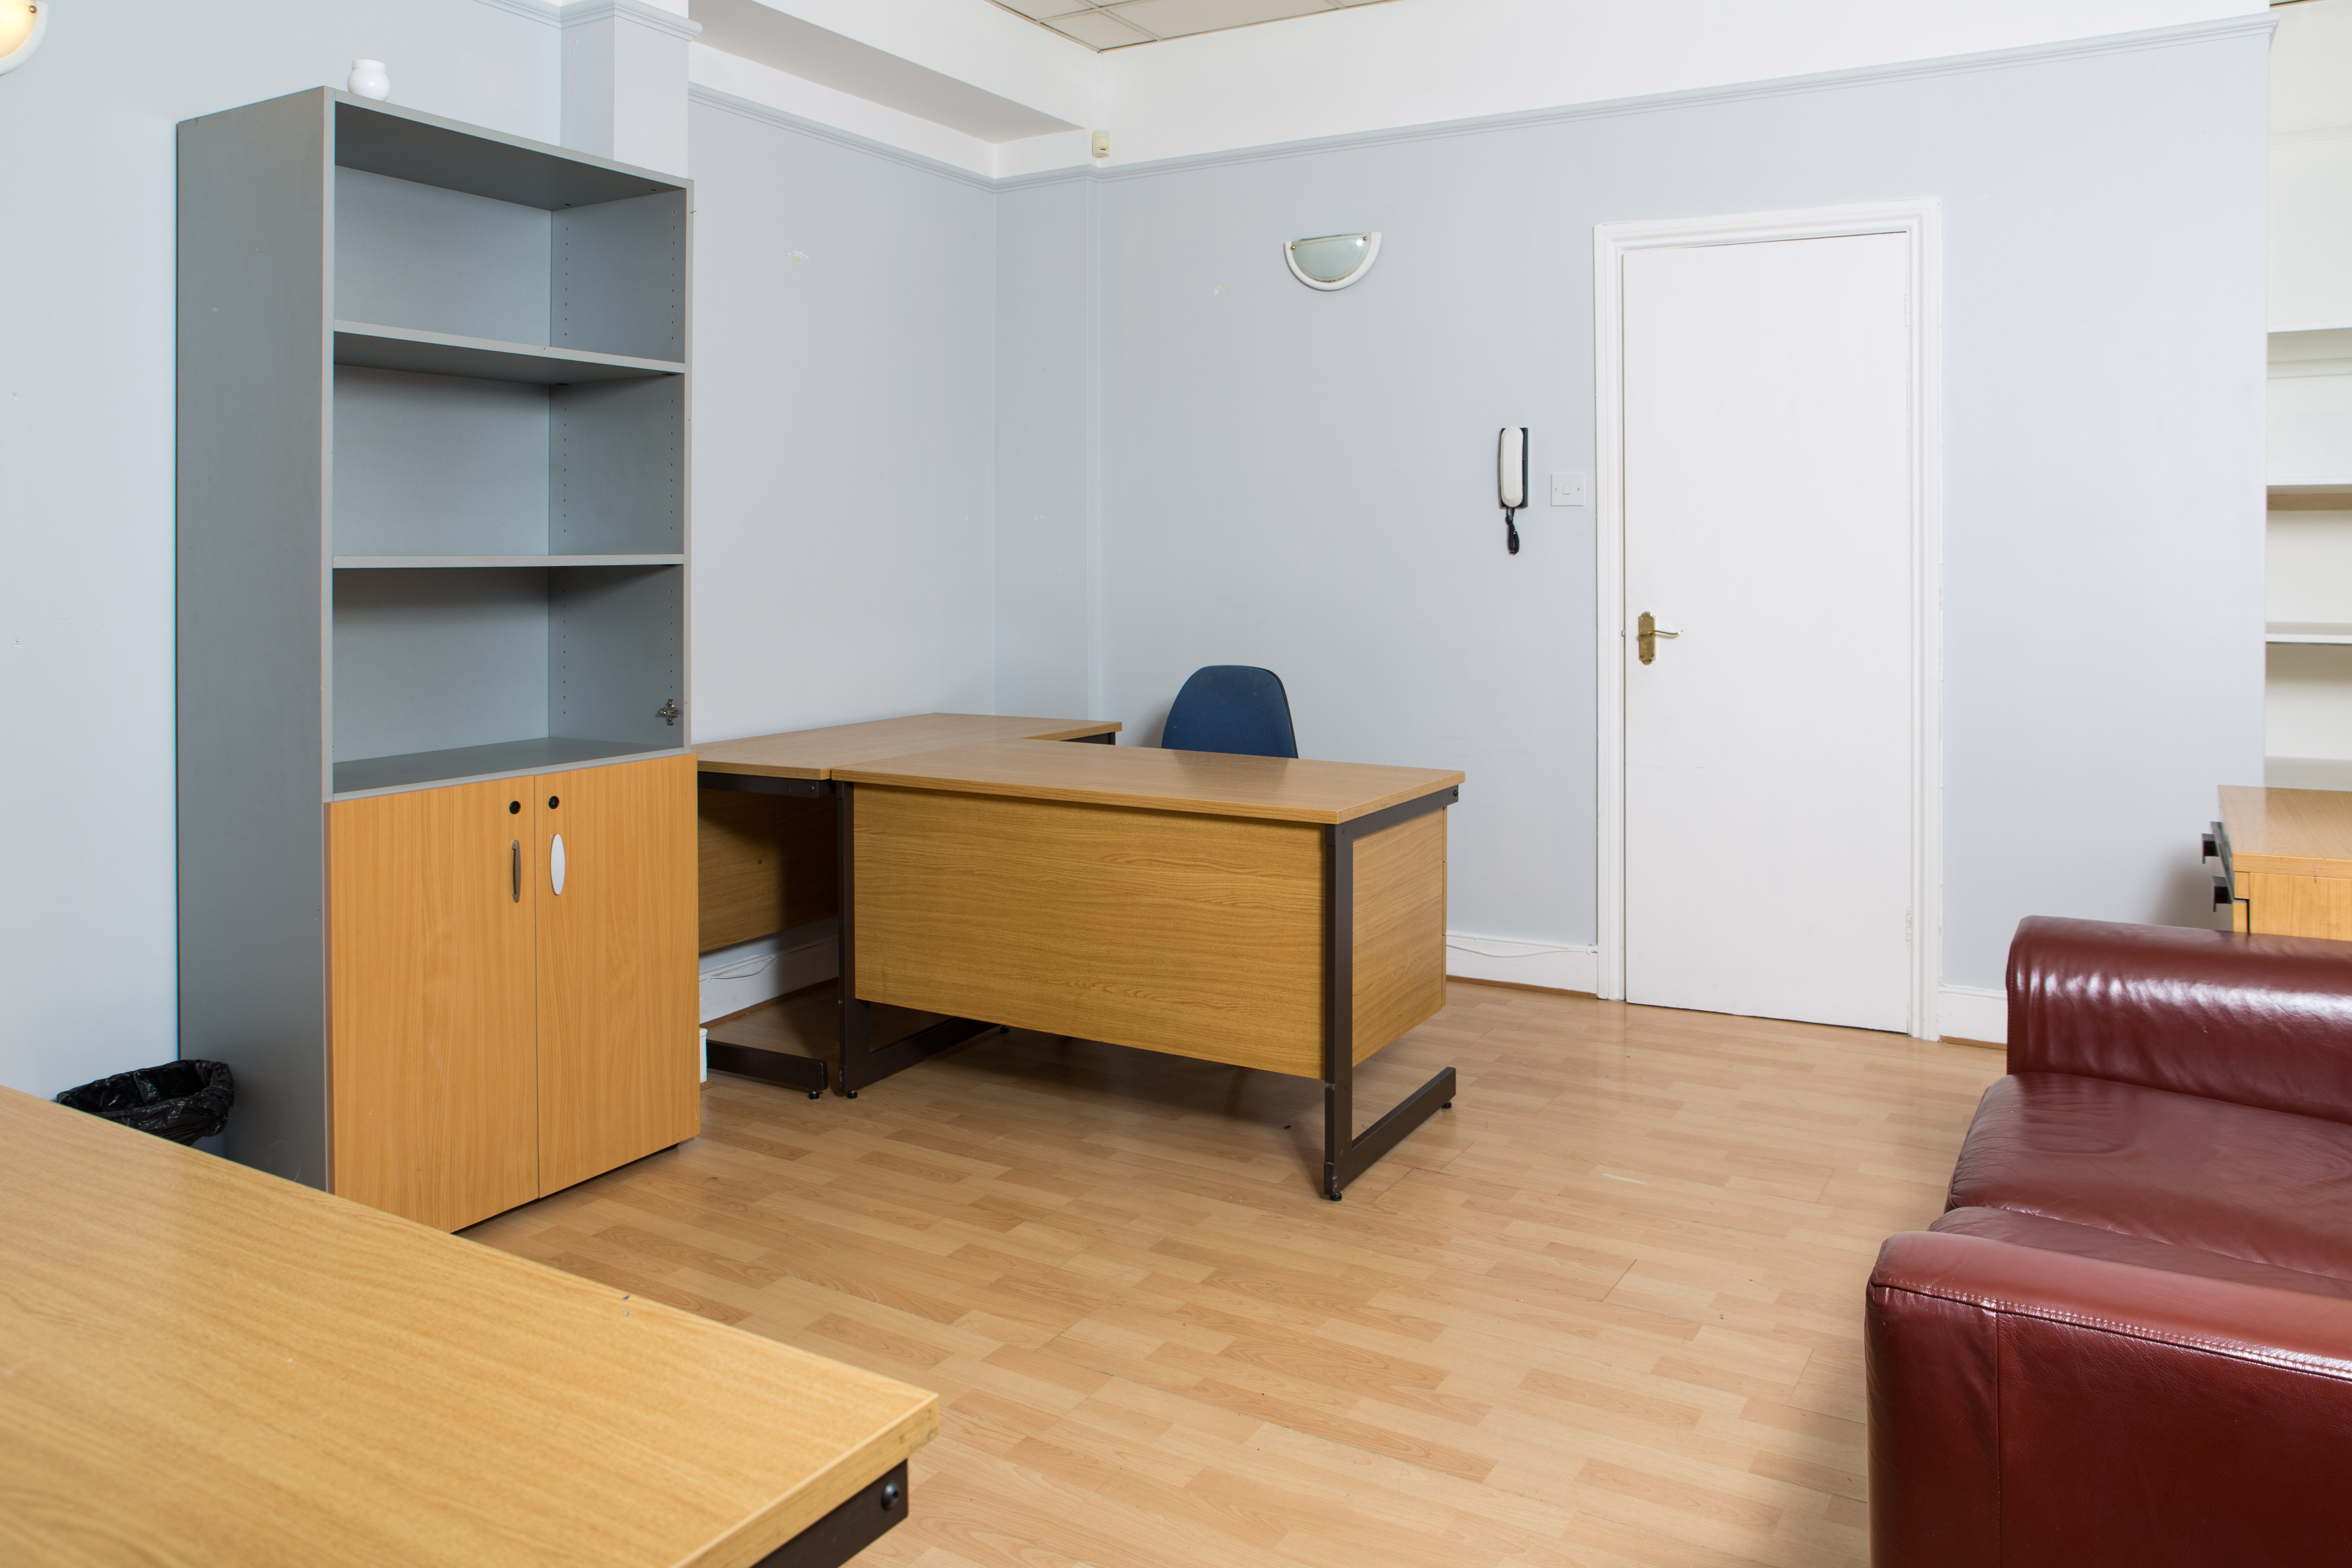 4-5 Accommodation Road, NW11 - Golders Green